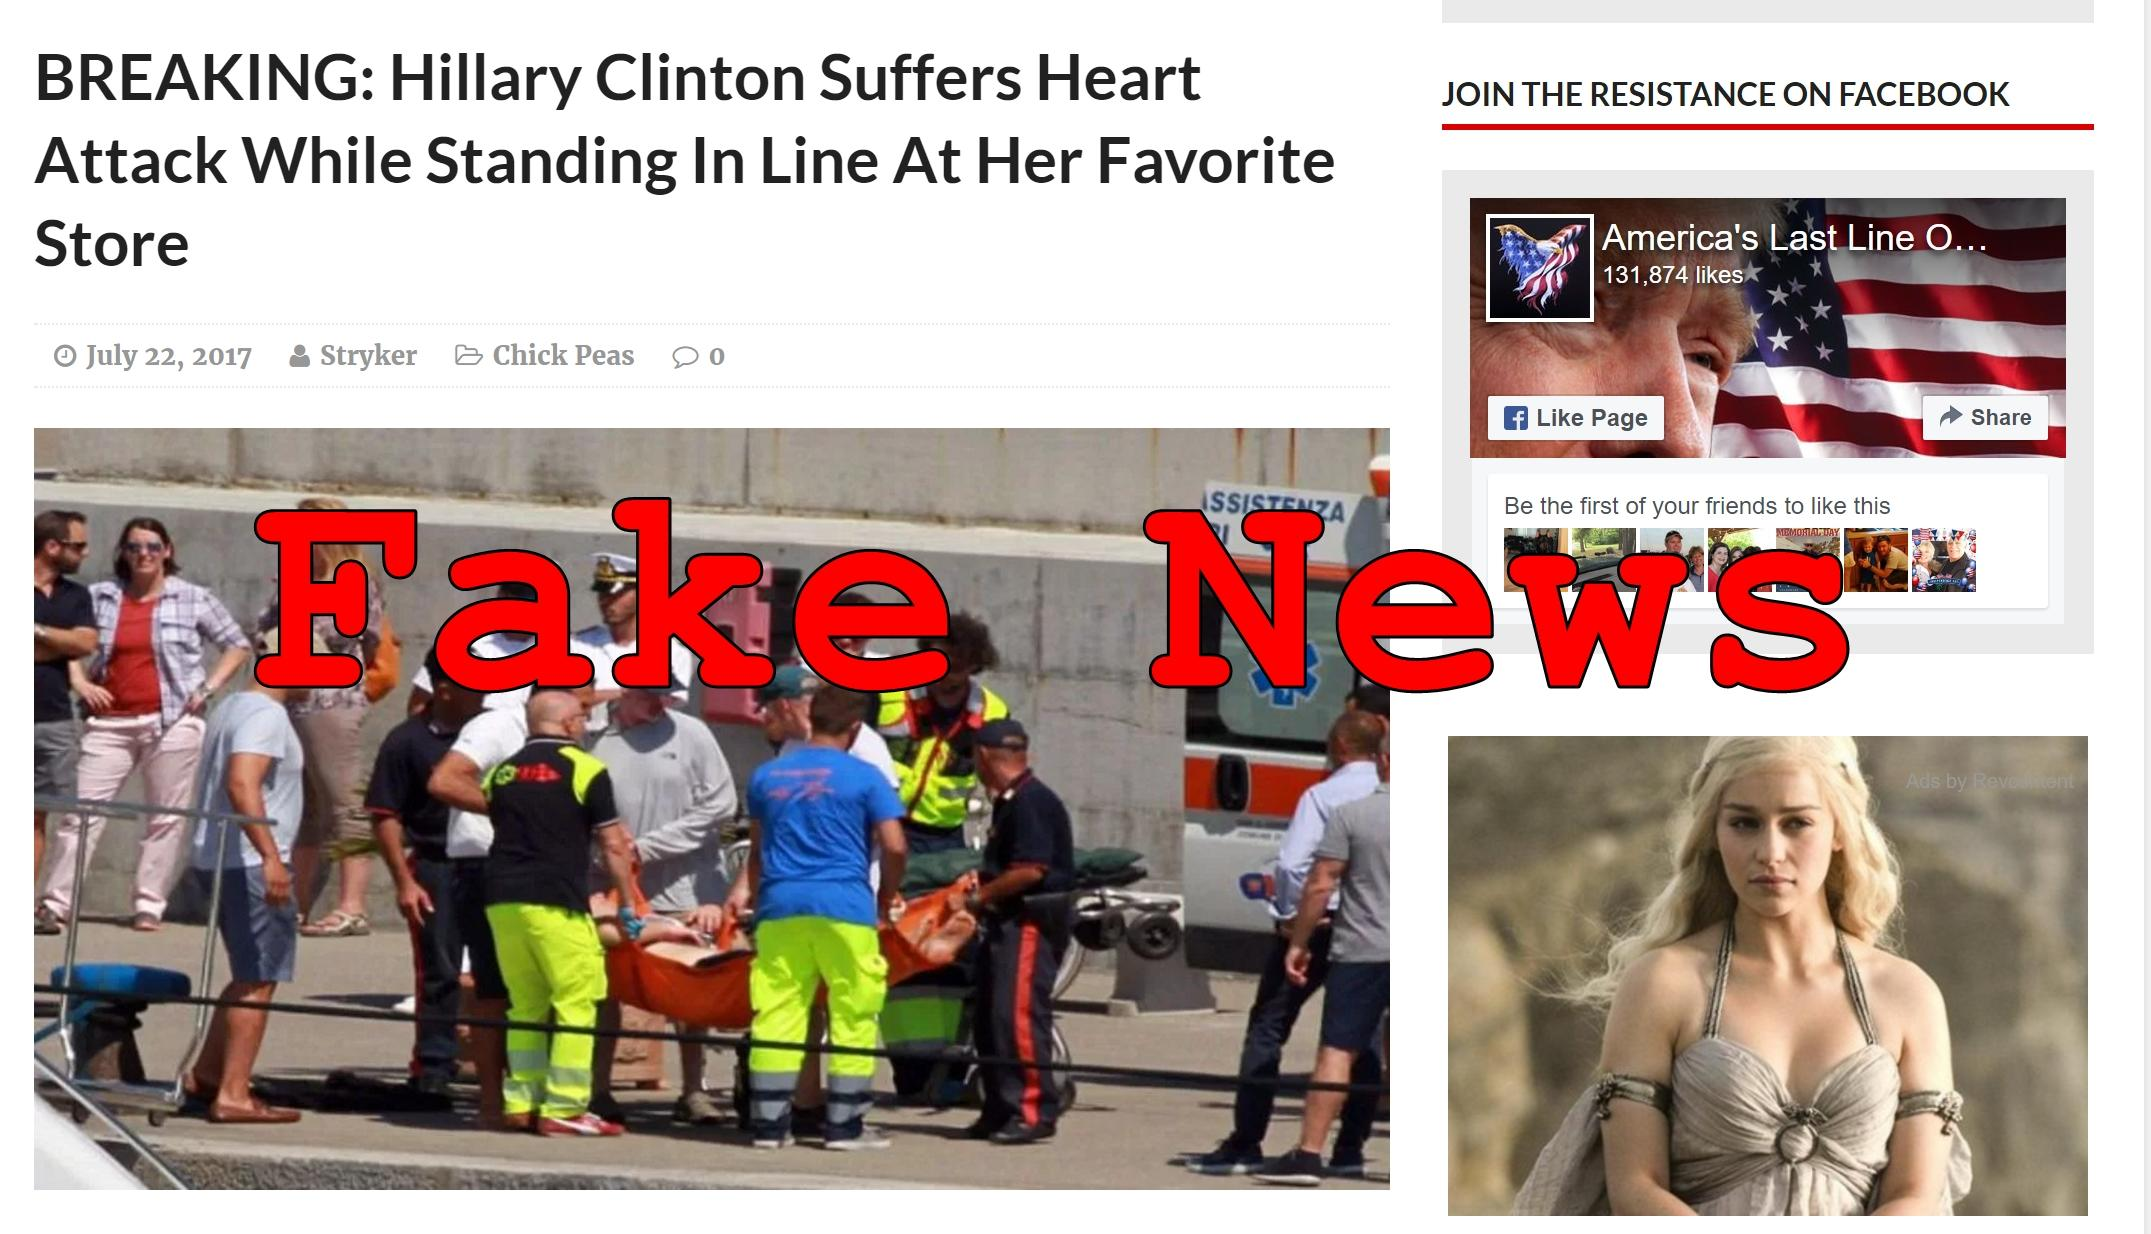 Fake News: Hillary Clinton Did NOT Suffer First, Second or Third Heart Attack